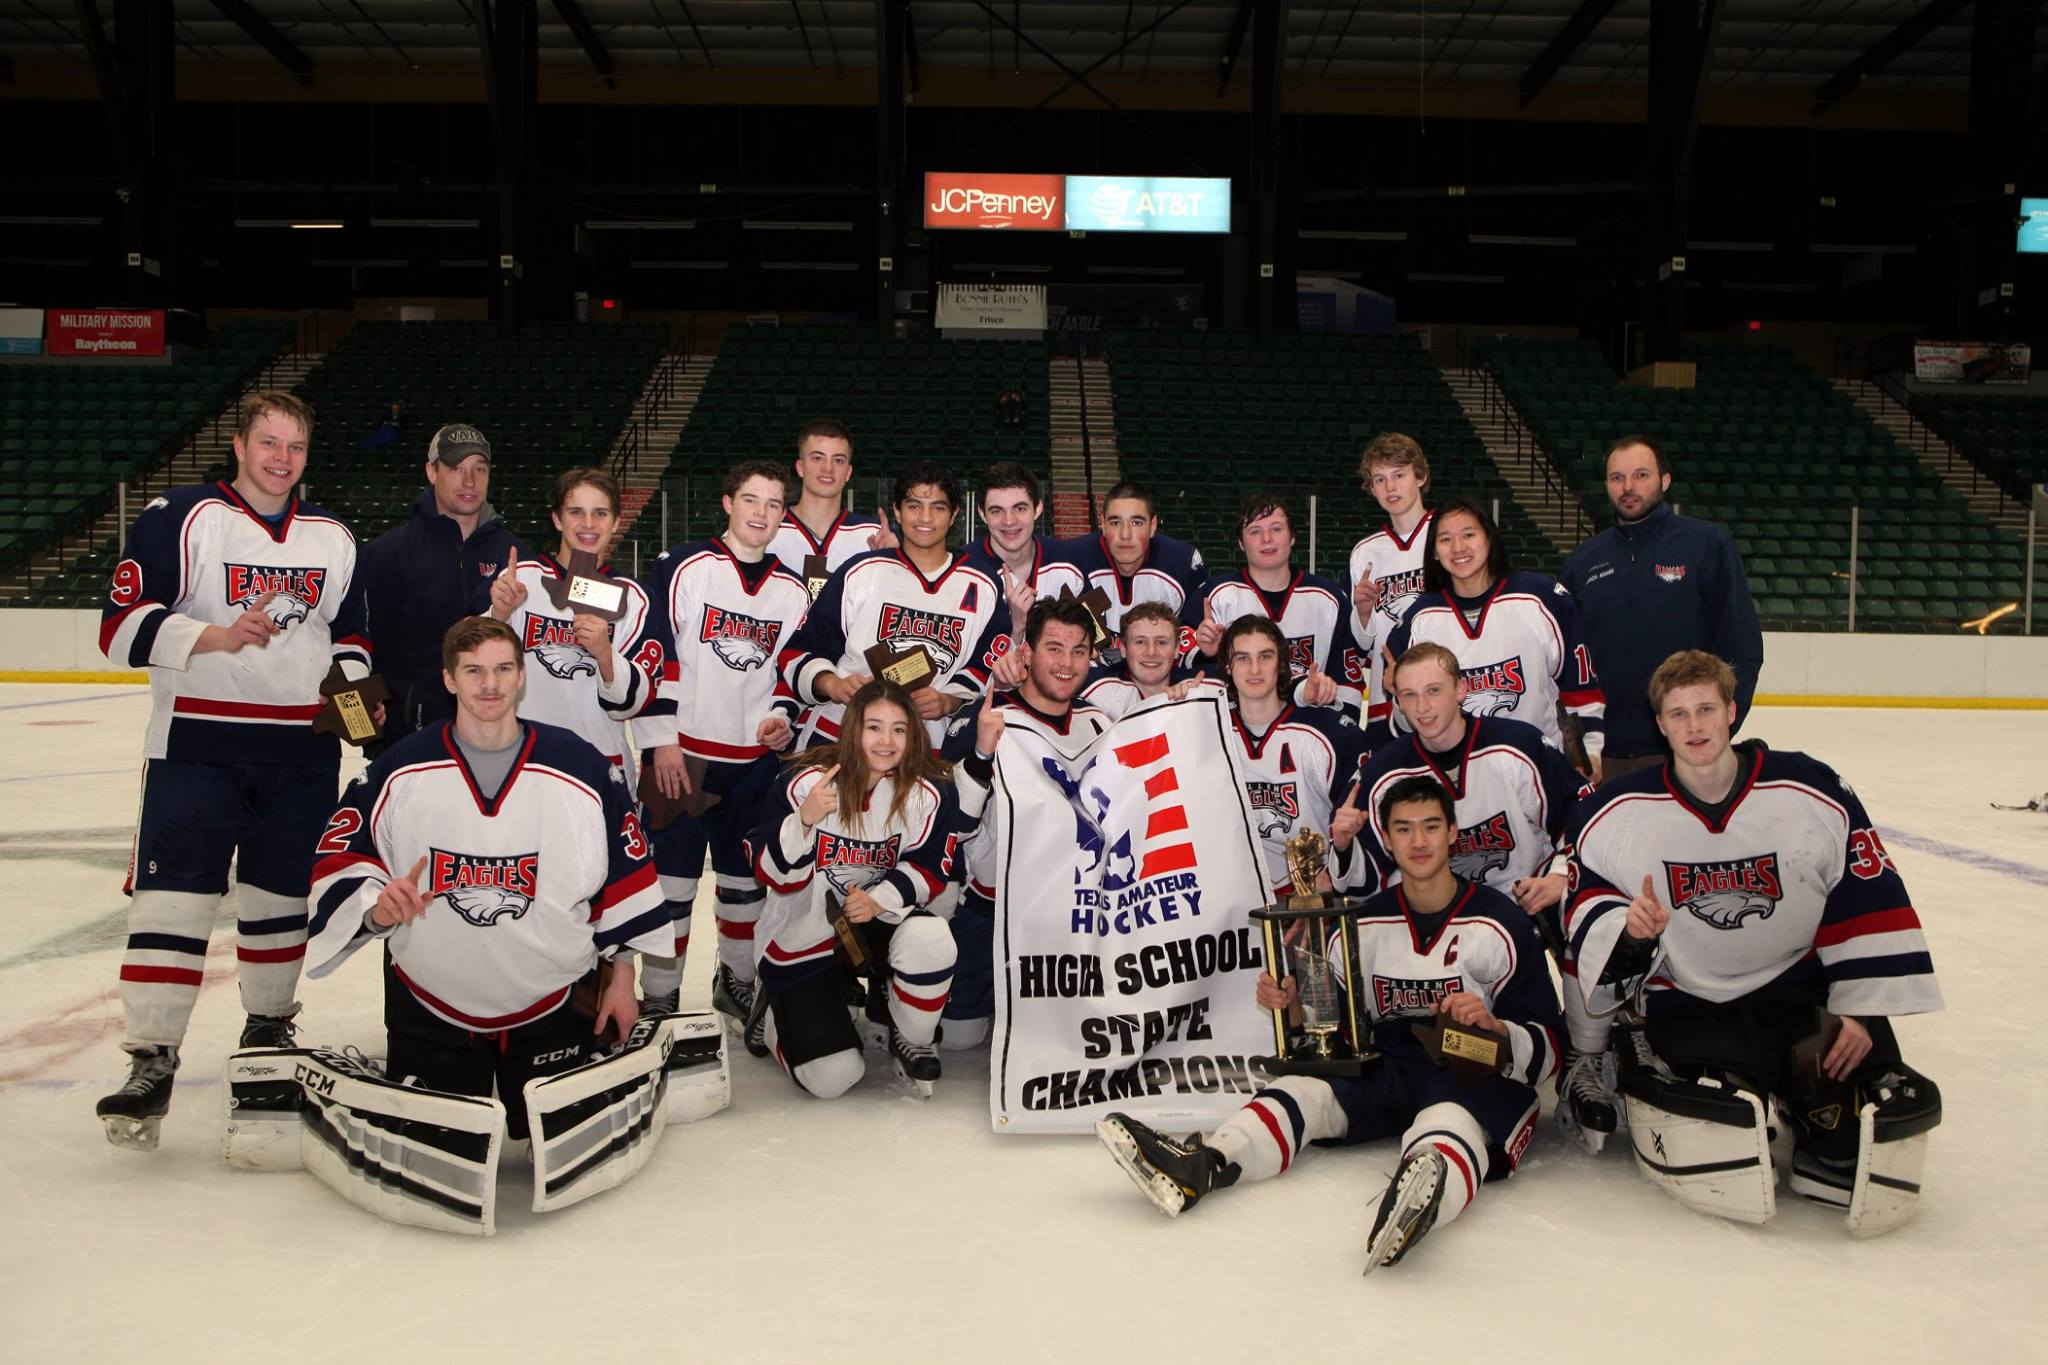 Photo courtesy of the Allen Eagle Hockey Club